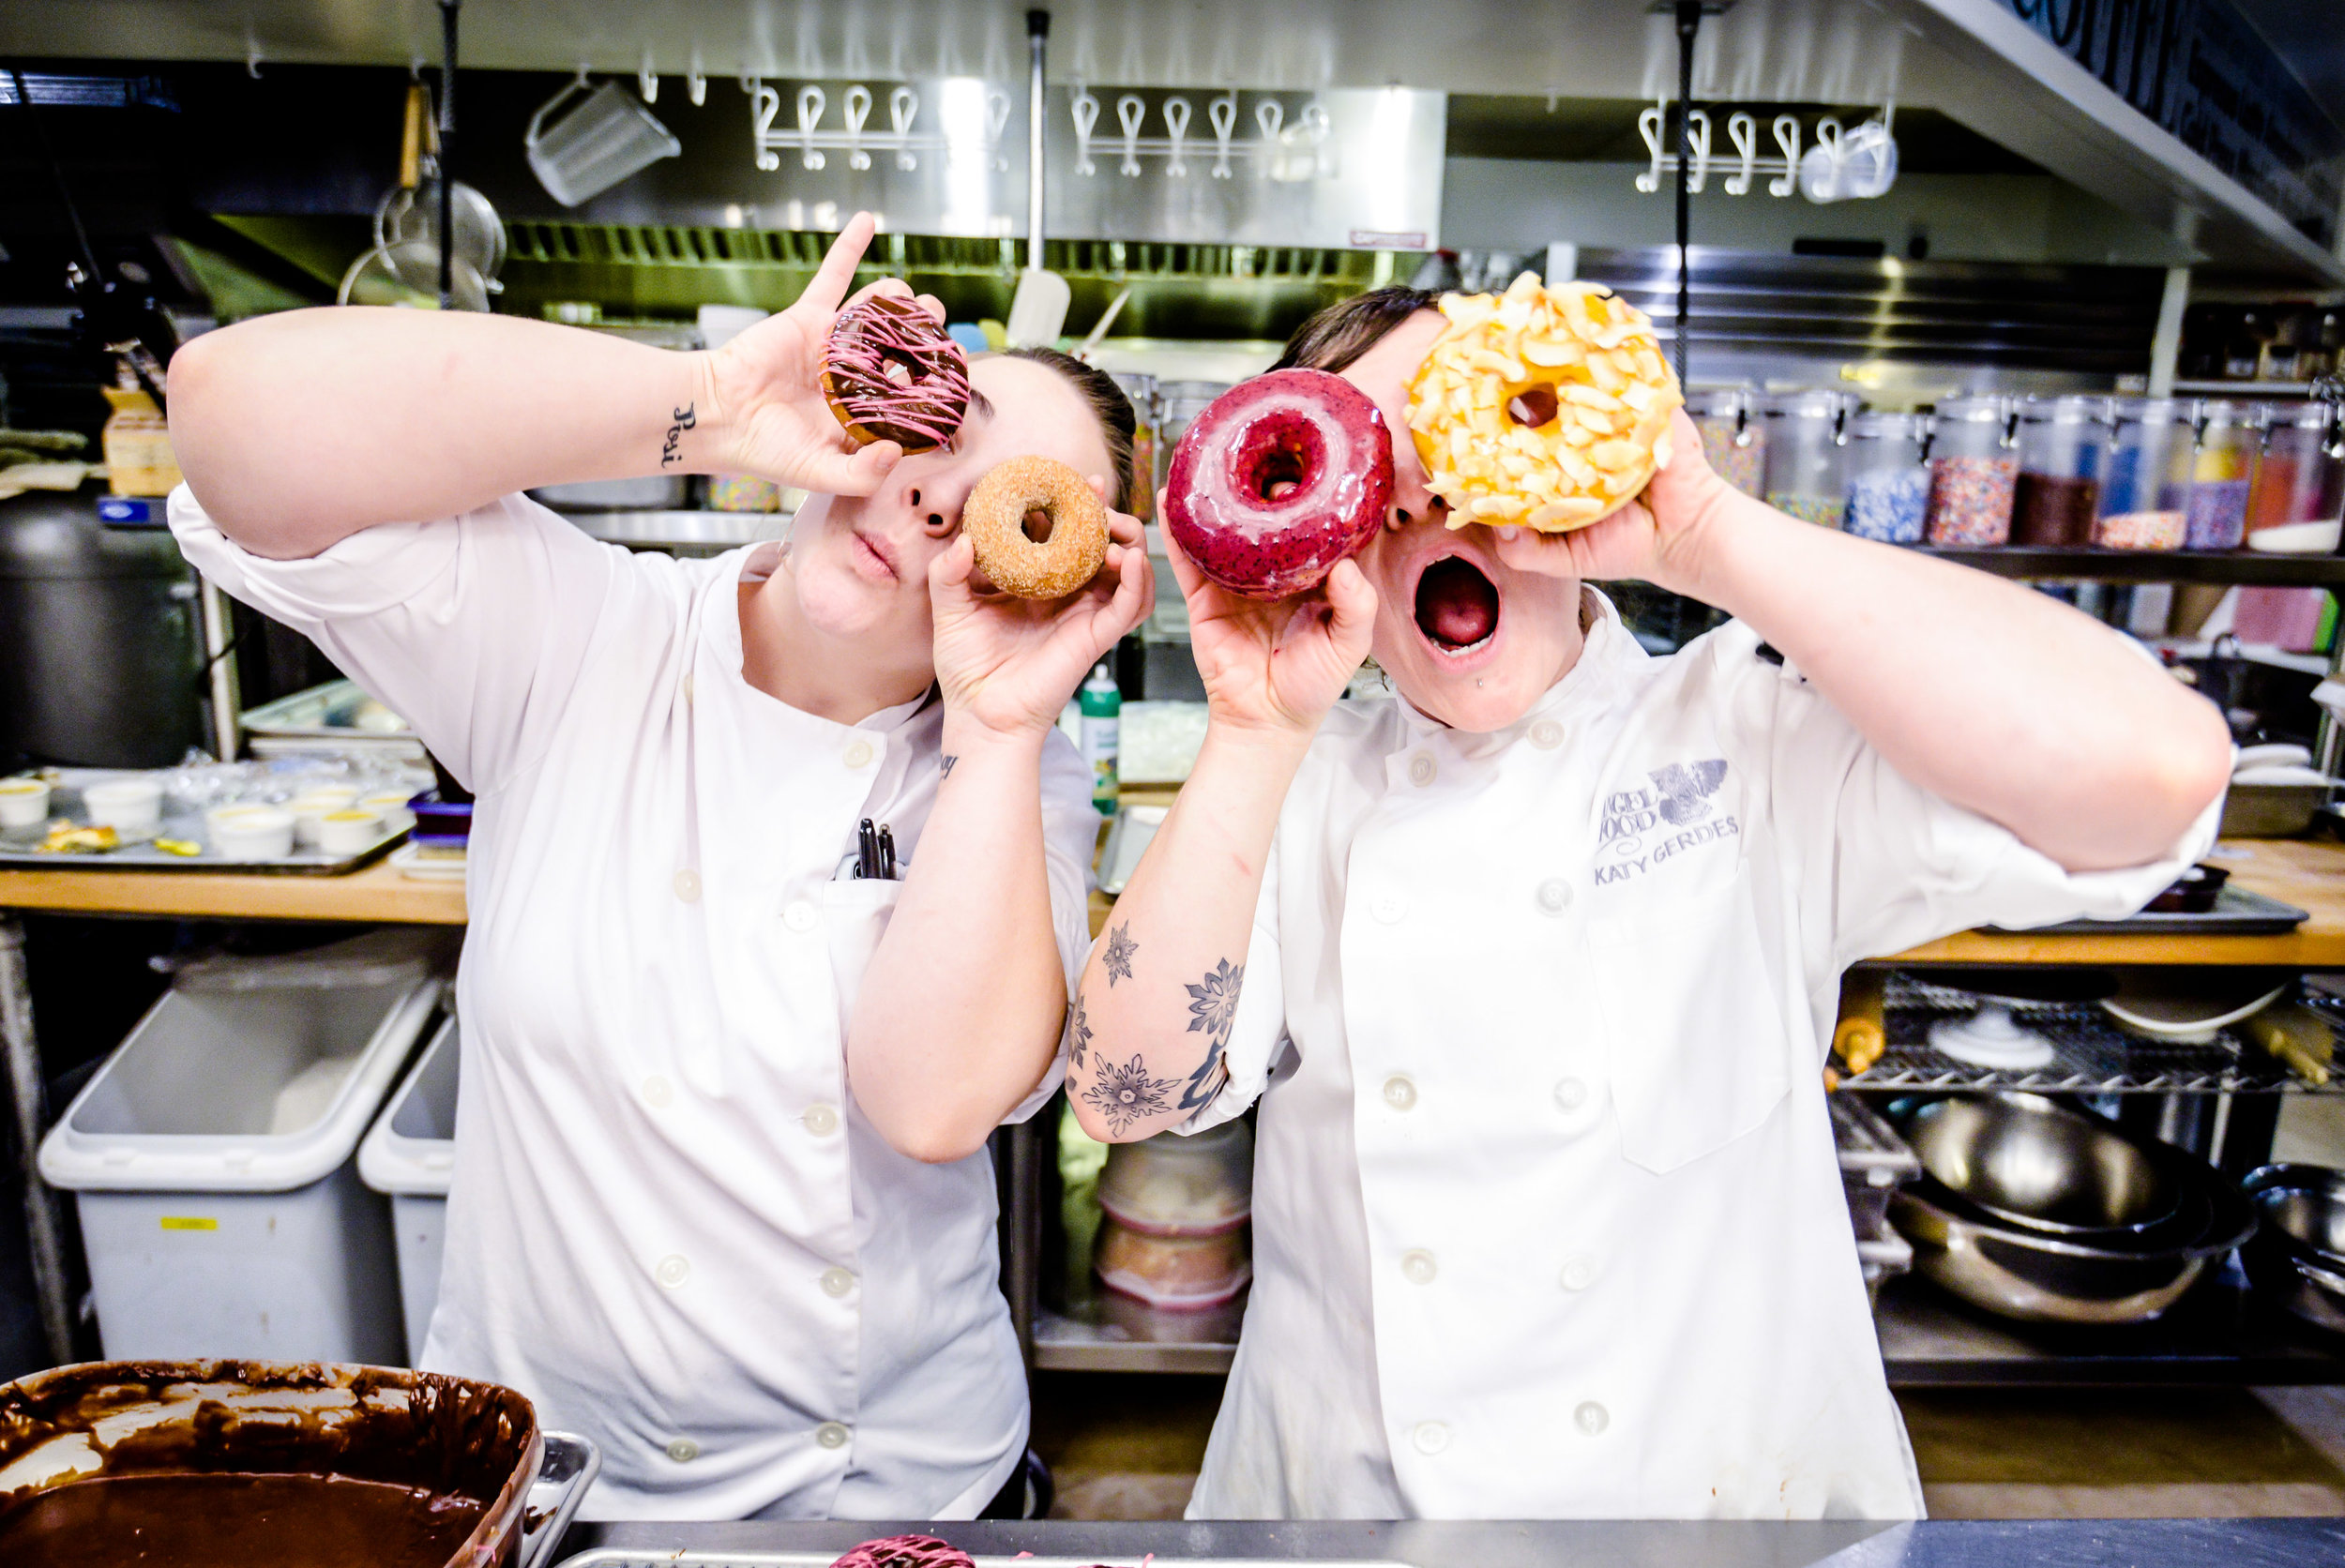 Bakey Bakey - We're looking for people that love sugar, flour, butter, eggs and creating magic with a hot oven or fryer. Sounds like you? Then keep reading below...